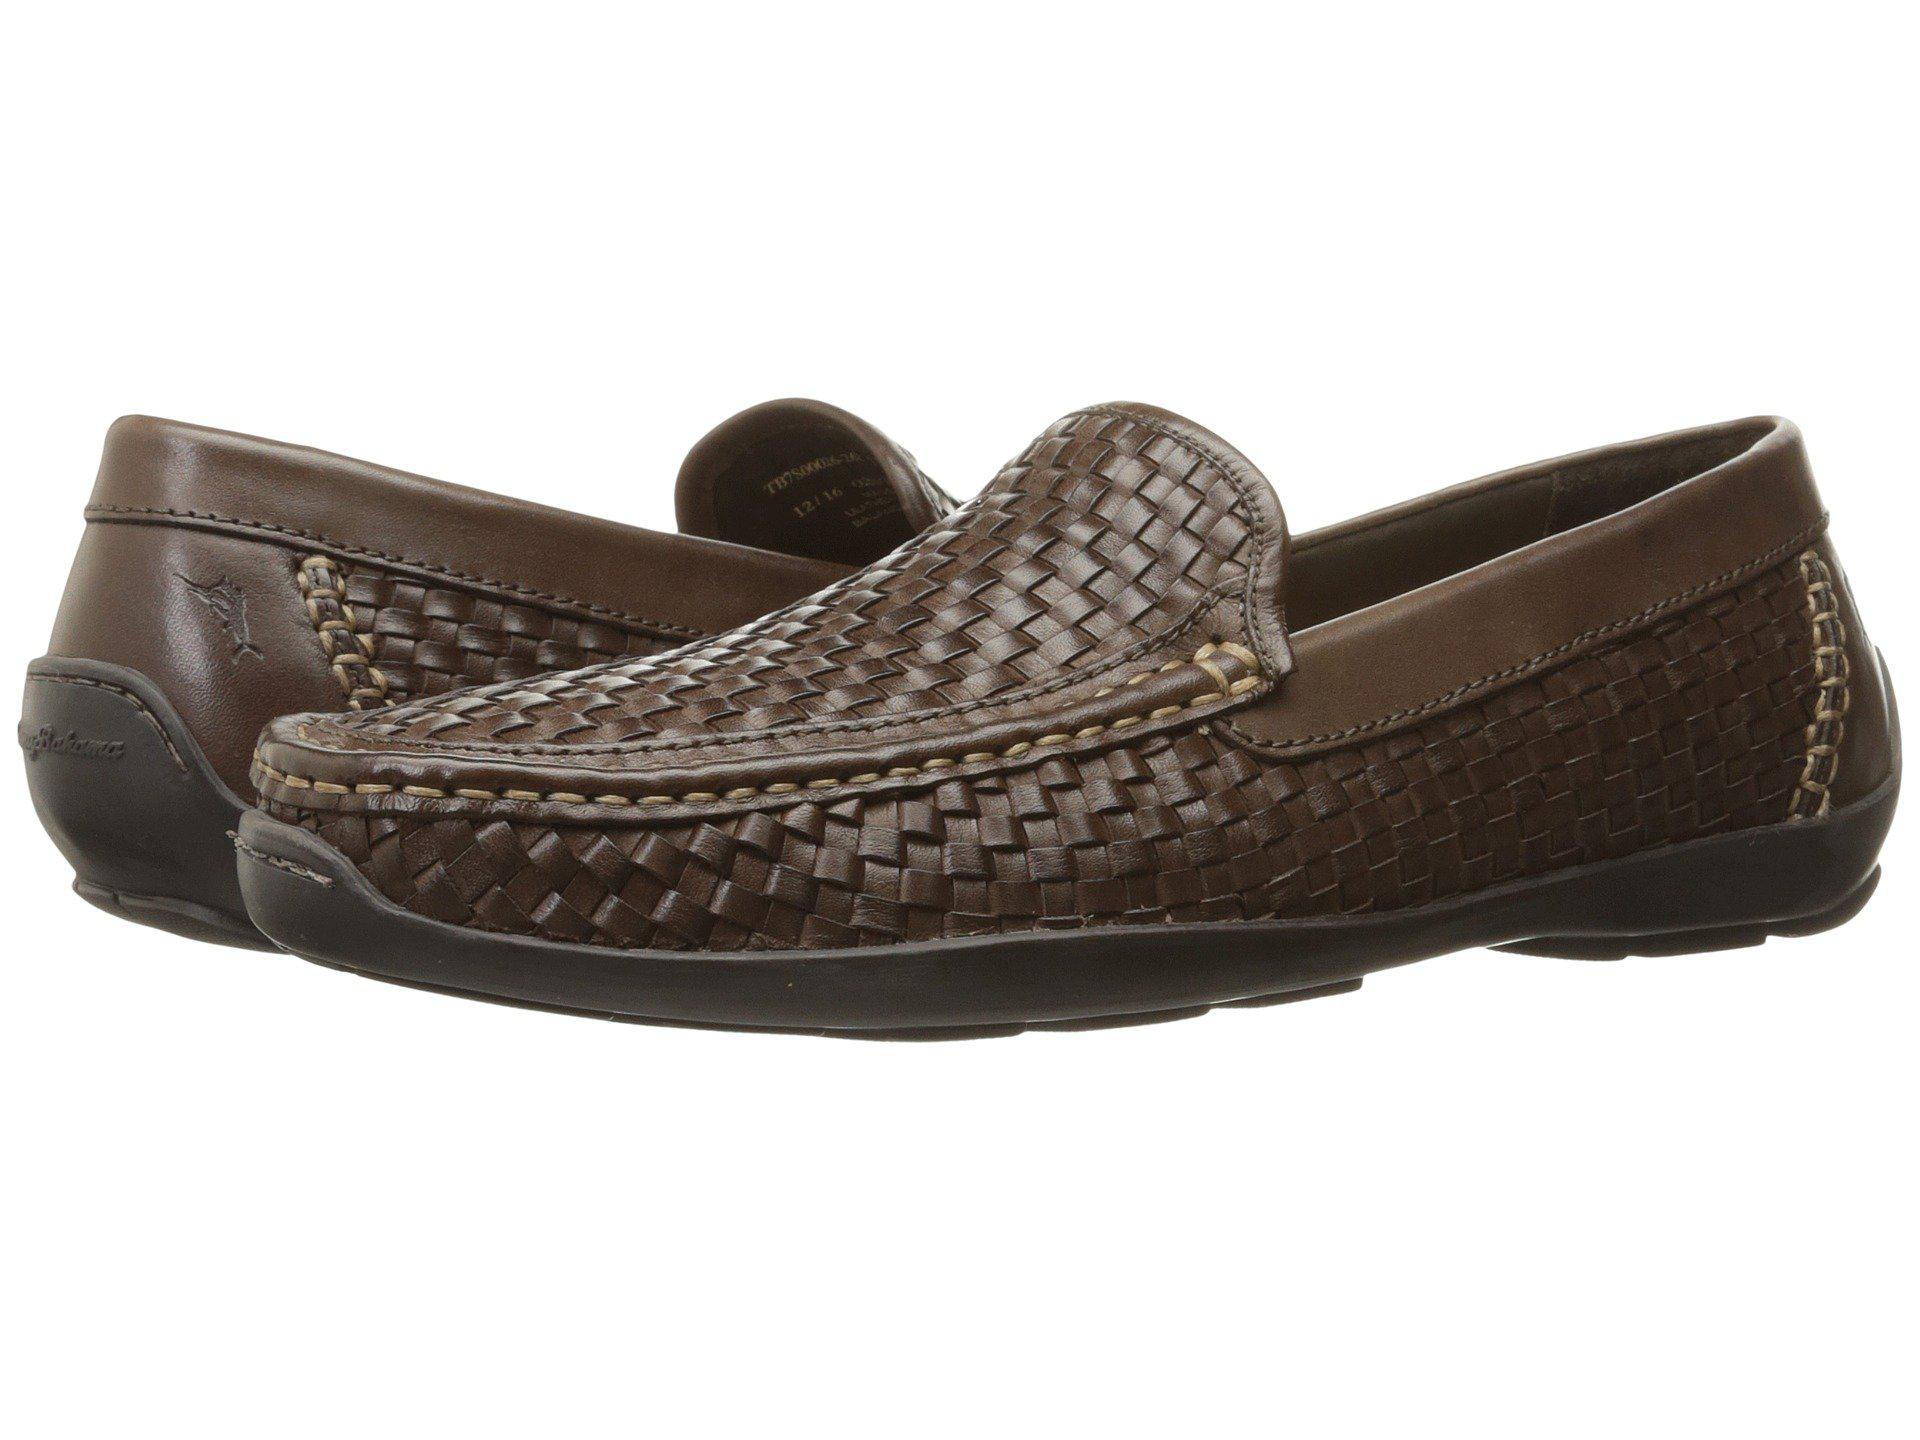 263a168f2415 Lyst - Tommy Bahama Orson Wide Slip-on Loafer in Brown for Men